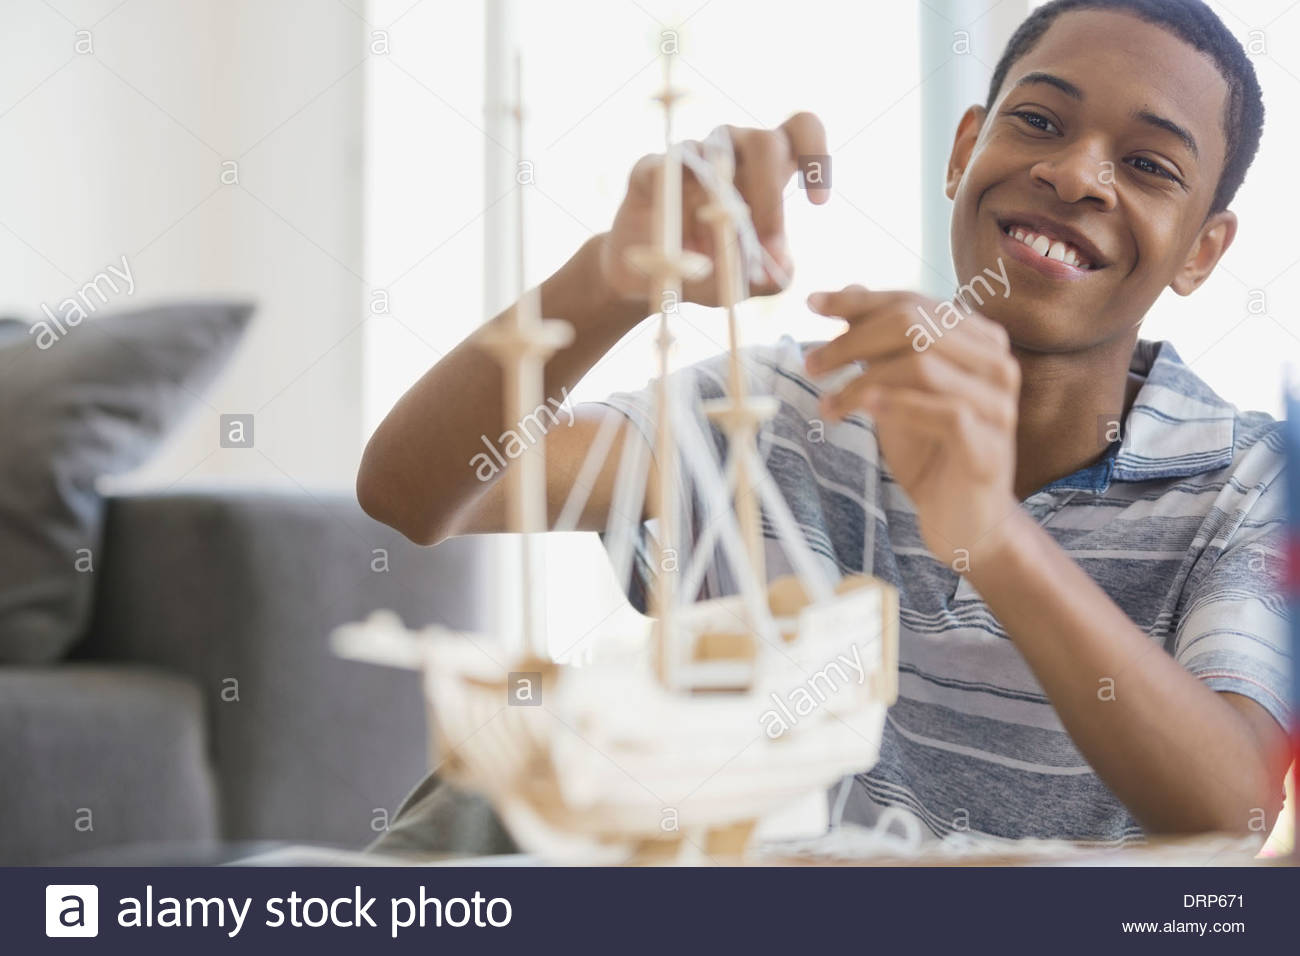 Teen building ship model at home - Stock Image